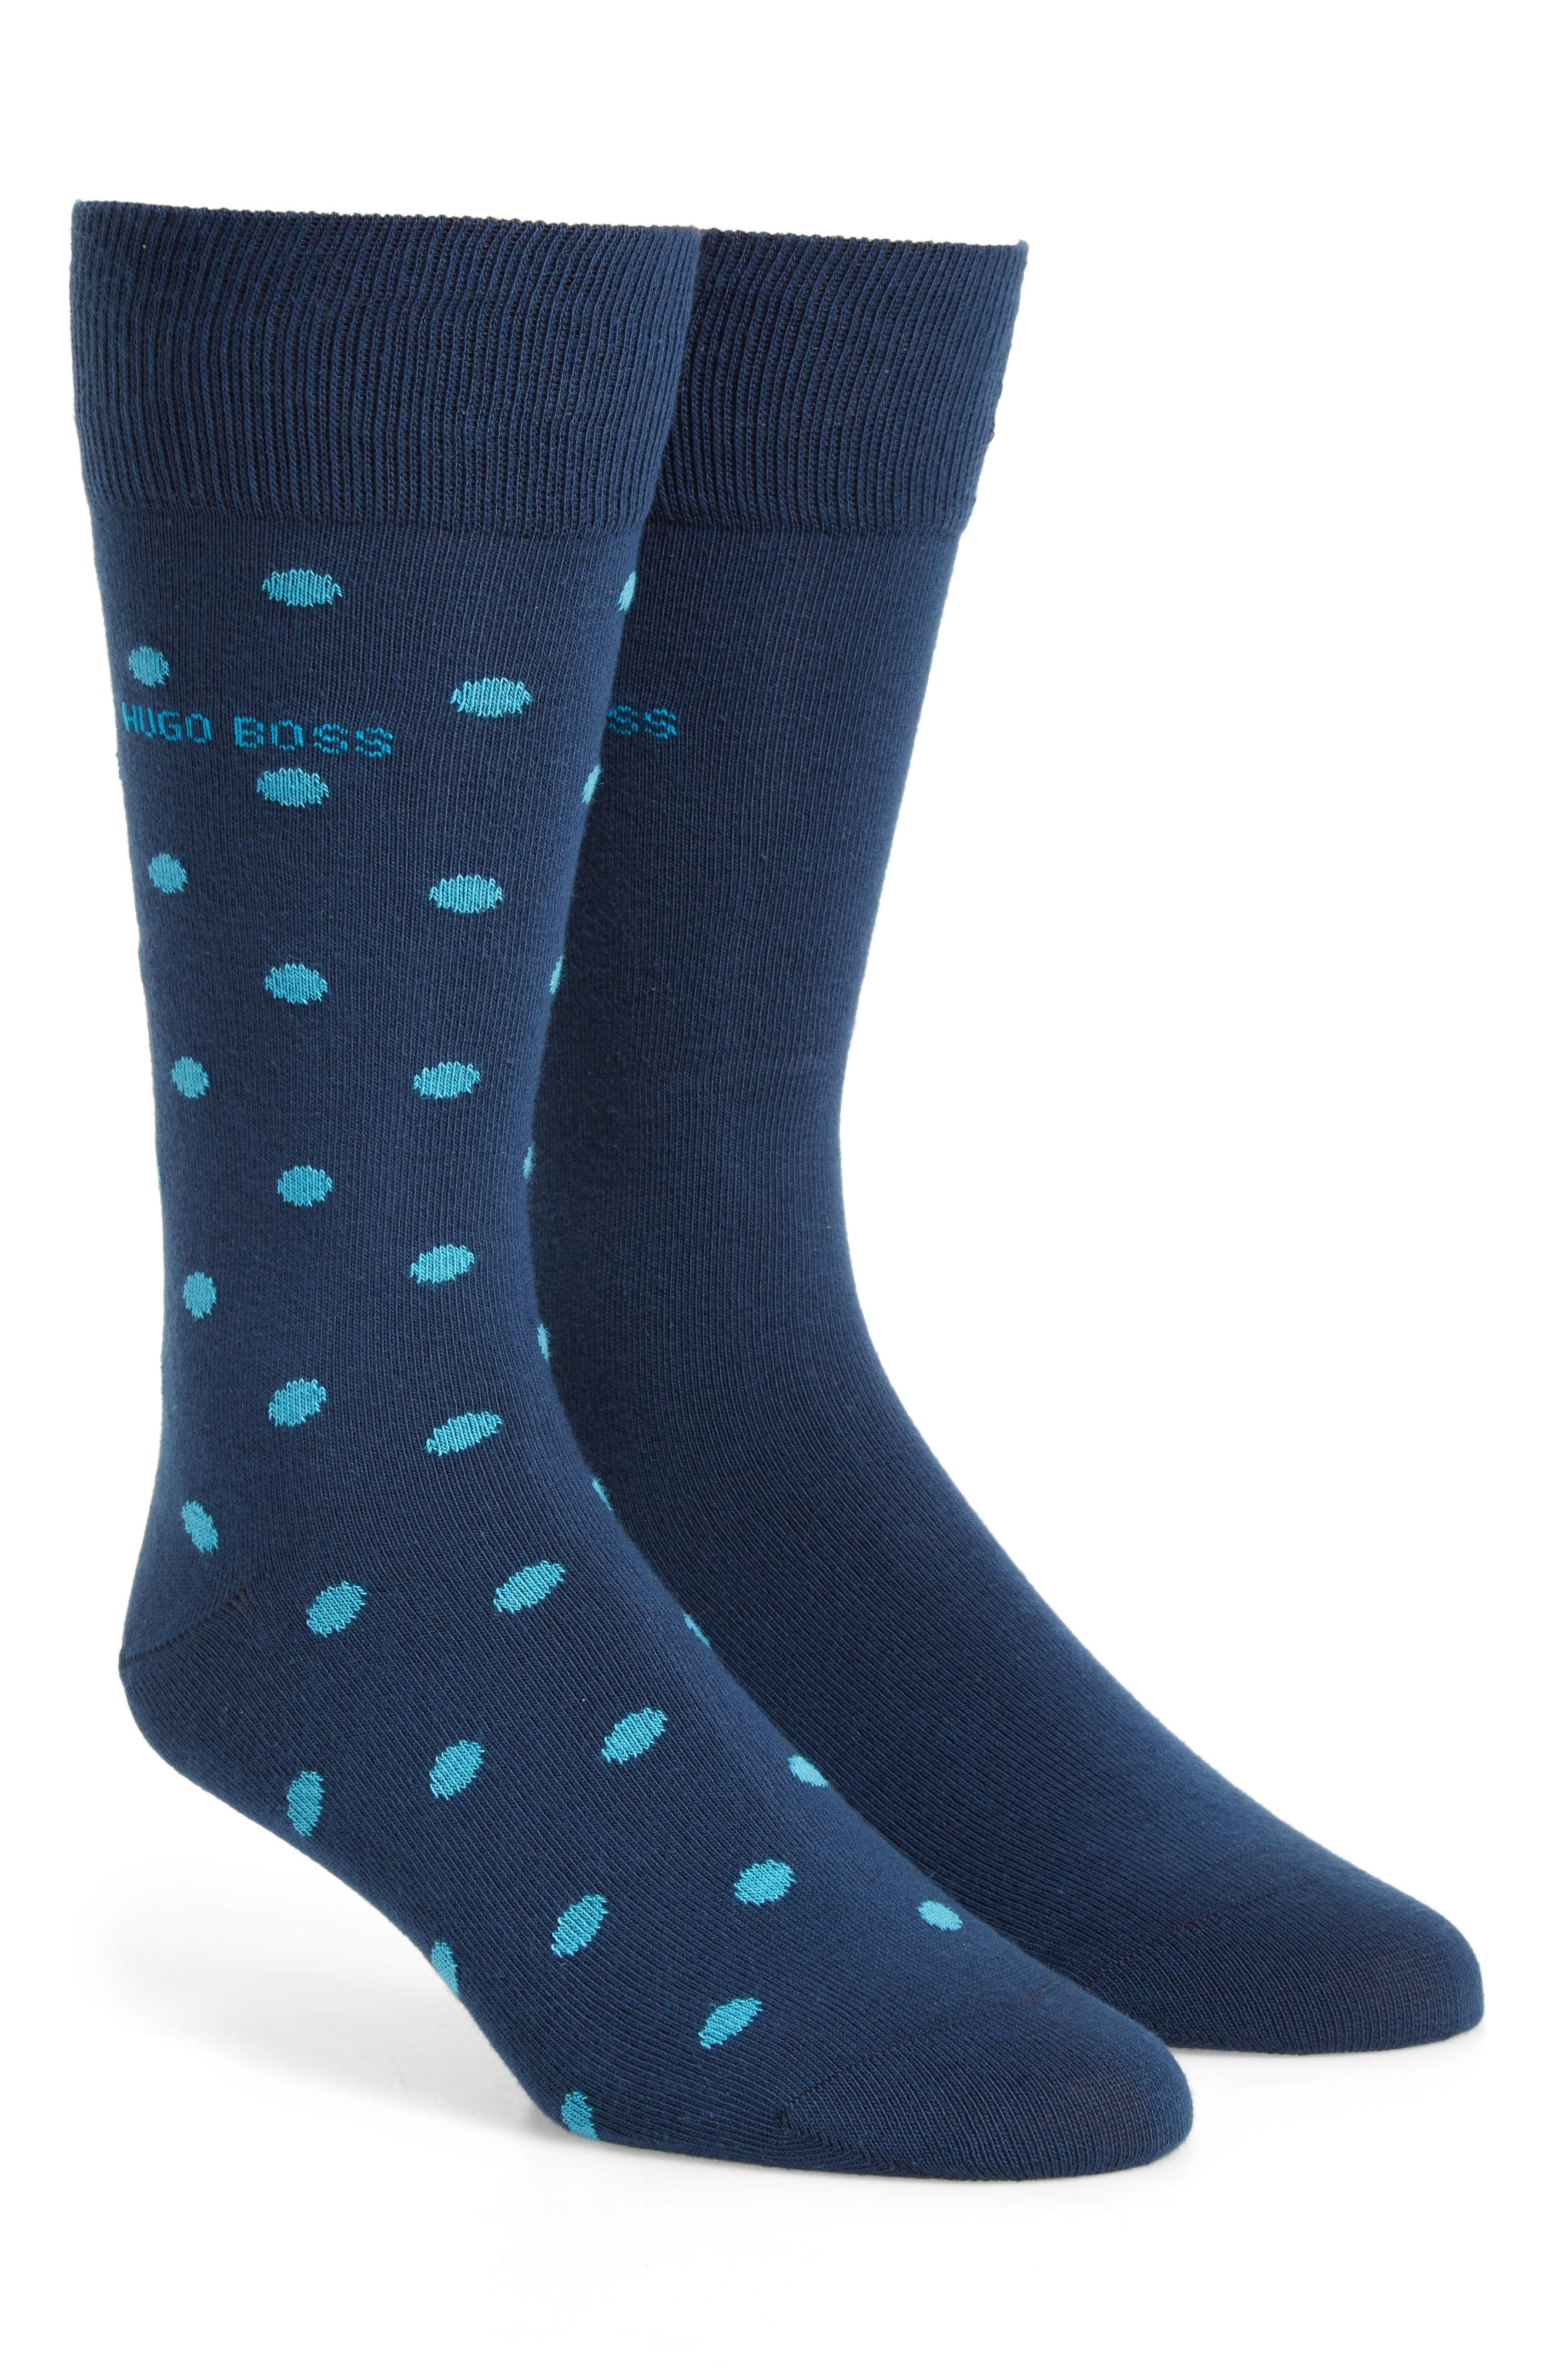 Hugo Boss Dot Socks In Blue